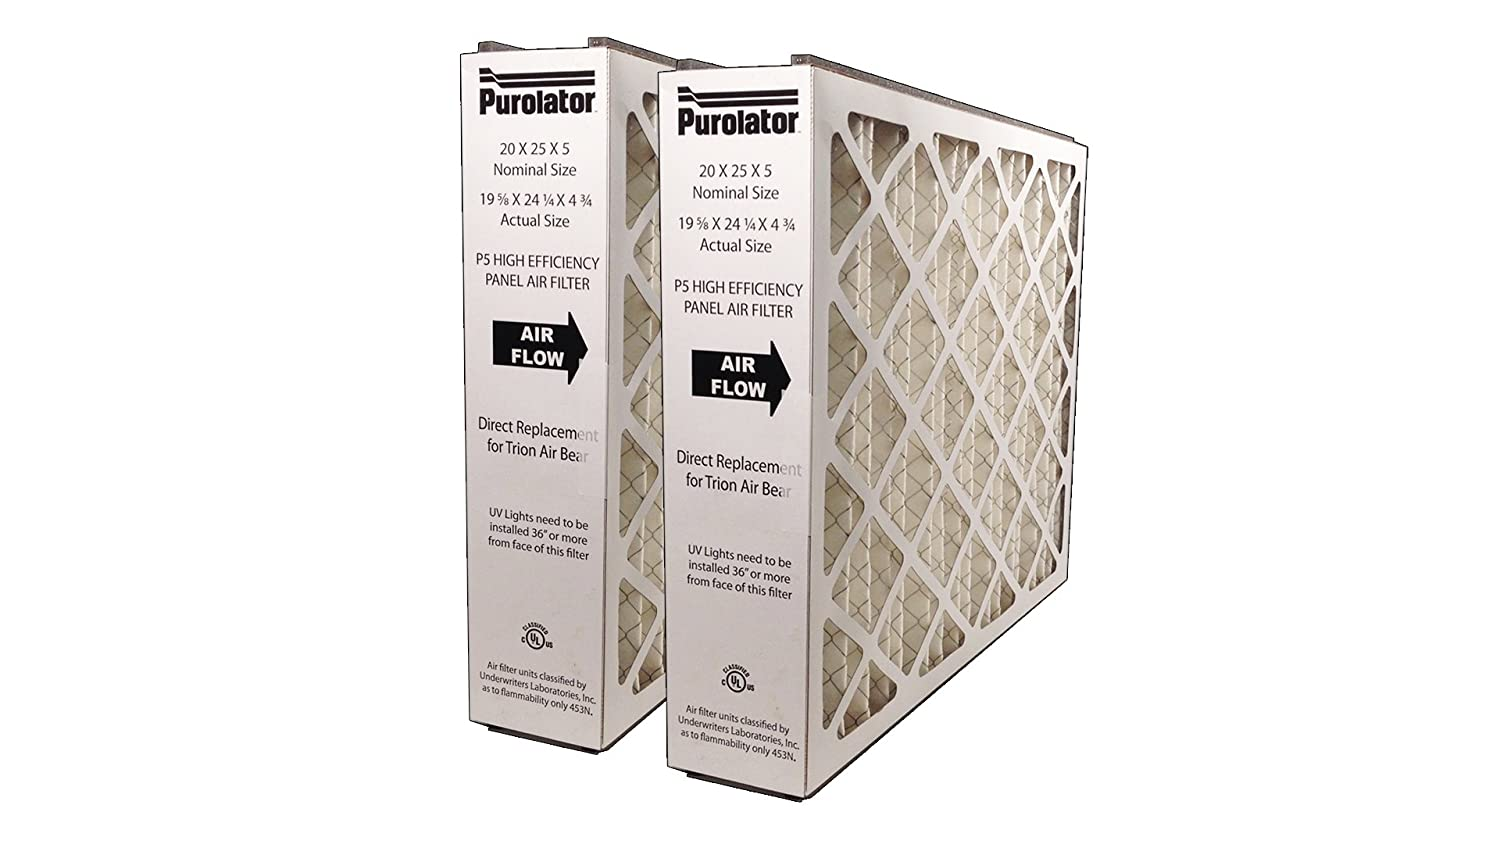 Sterling Seal P5MV8-20X20X5X4XCS P5-MV8 20x20x5 Purolator High End Filter Replacement for Trion Air Bear NJ Assigned By Sur-Seal Inc Pack of 4